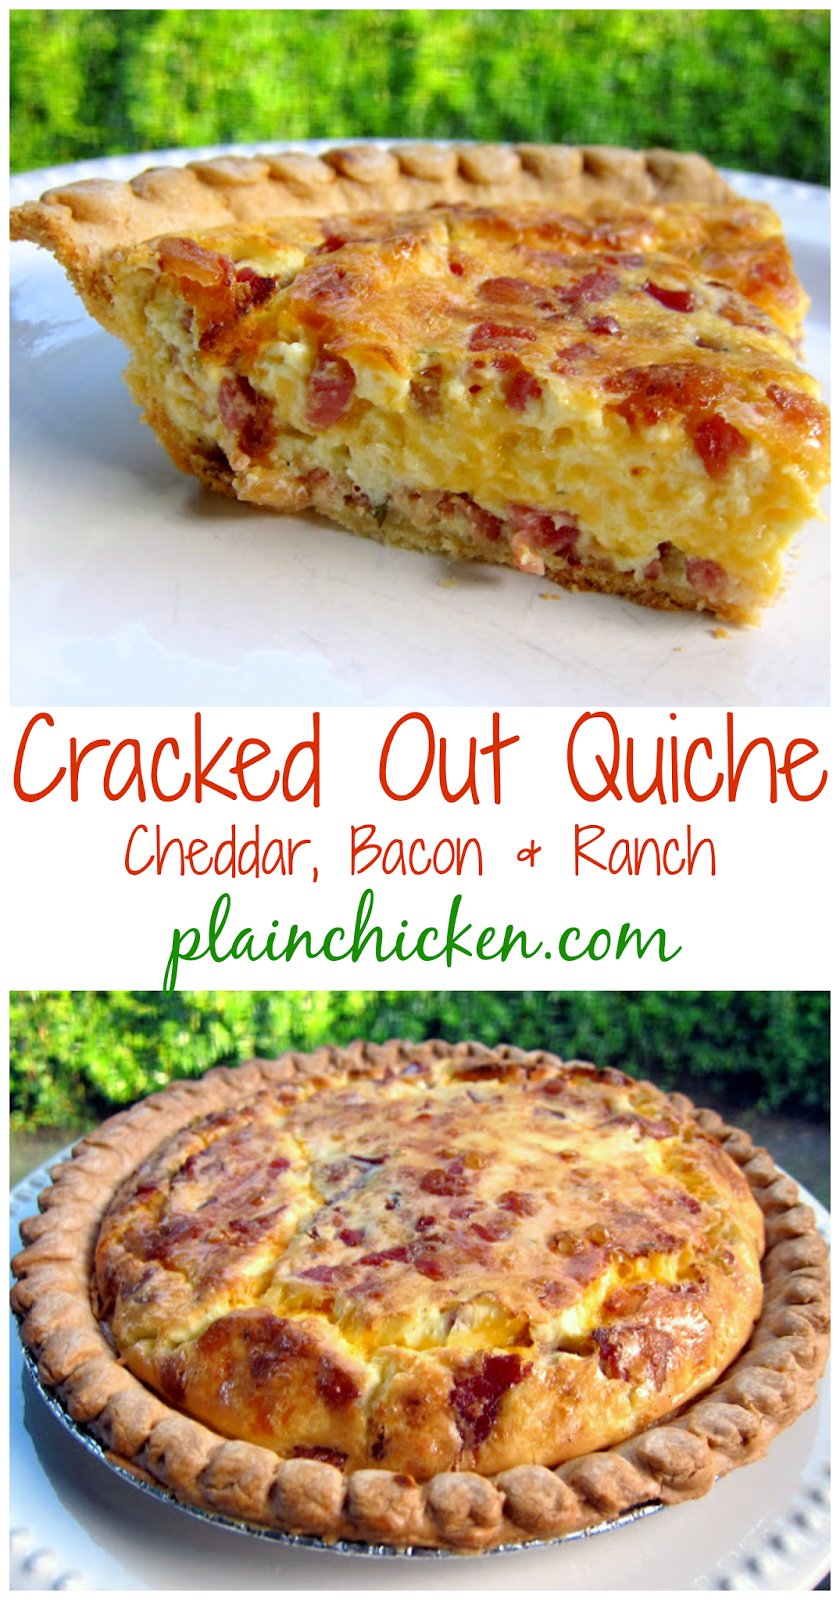 cracked out quiche plain chicken. Black Bedroom Furniture Sets. Home Design Ideas